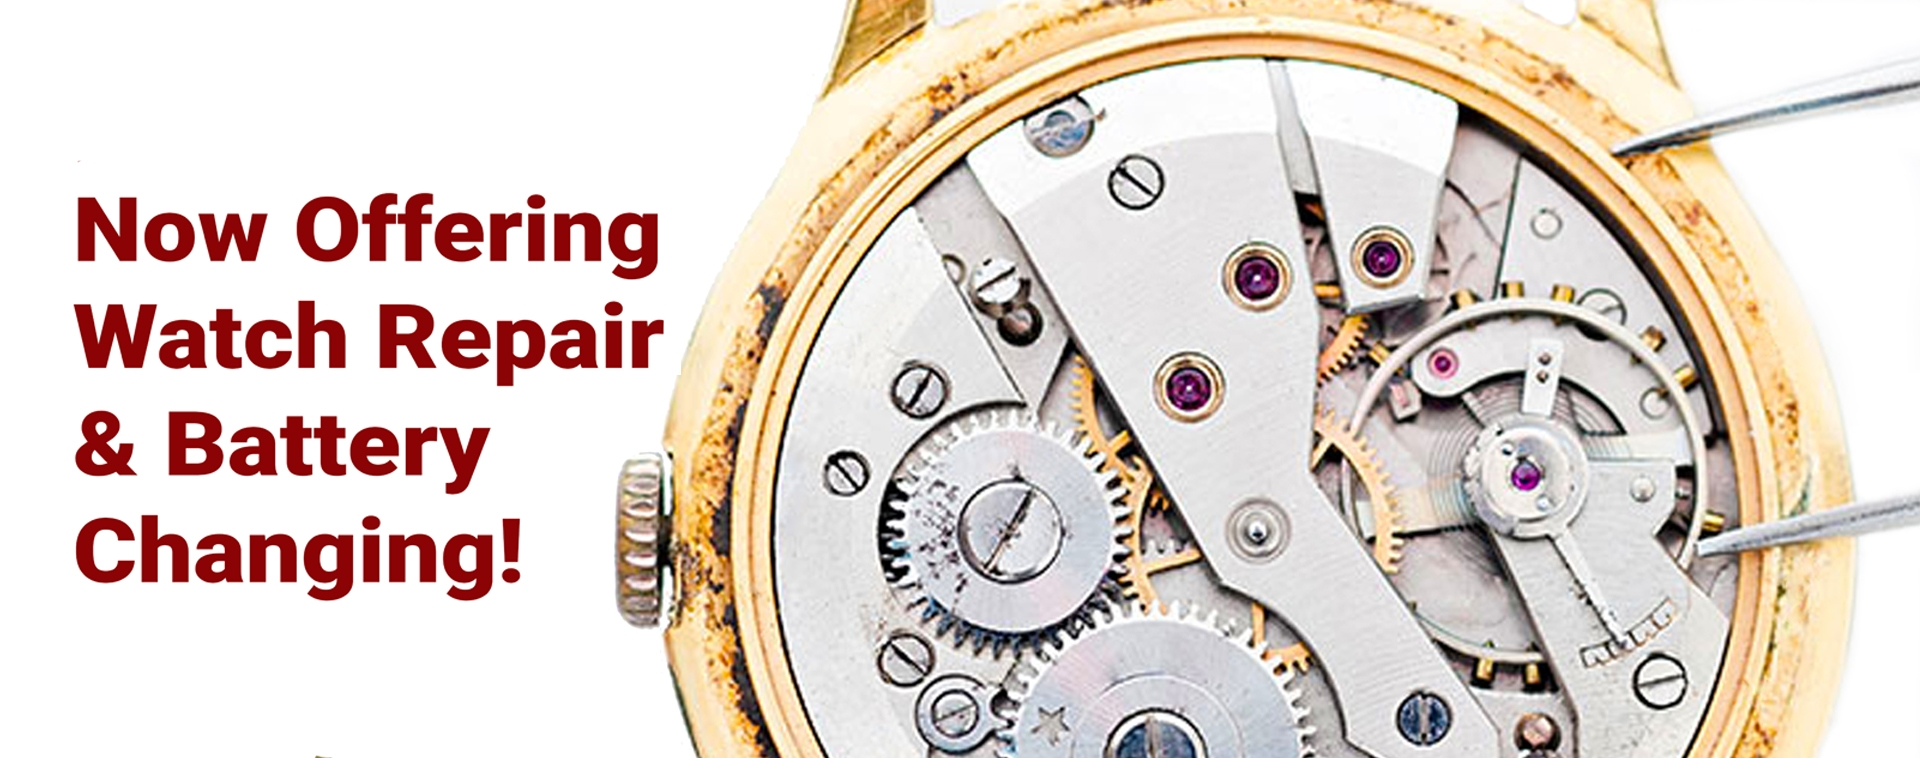 Watch Repair & Watch Battery Changing & Watch Services